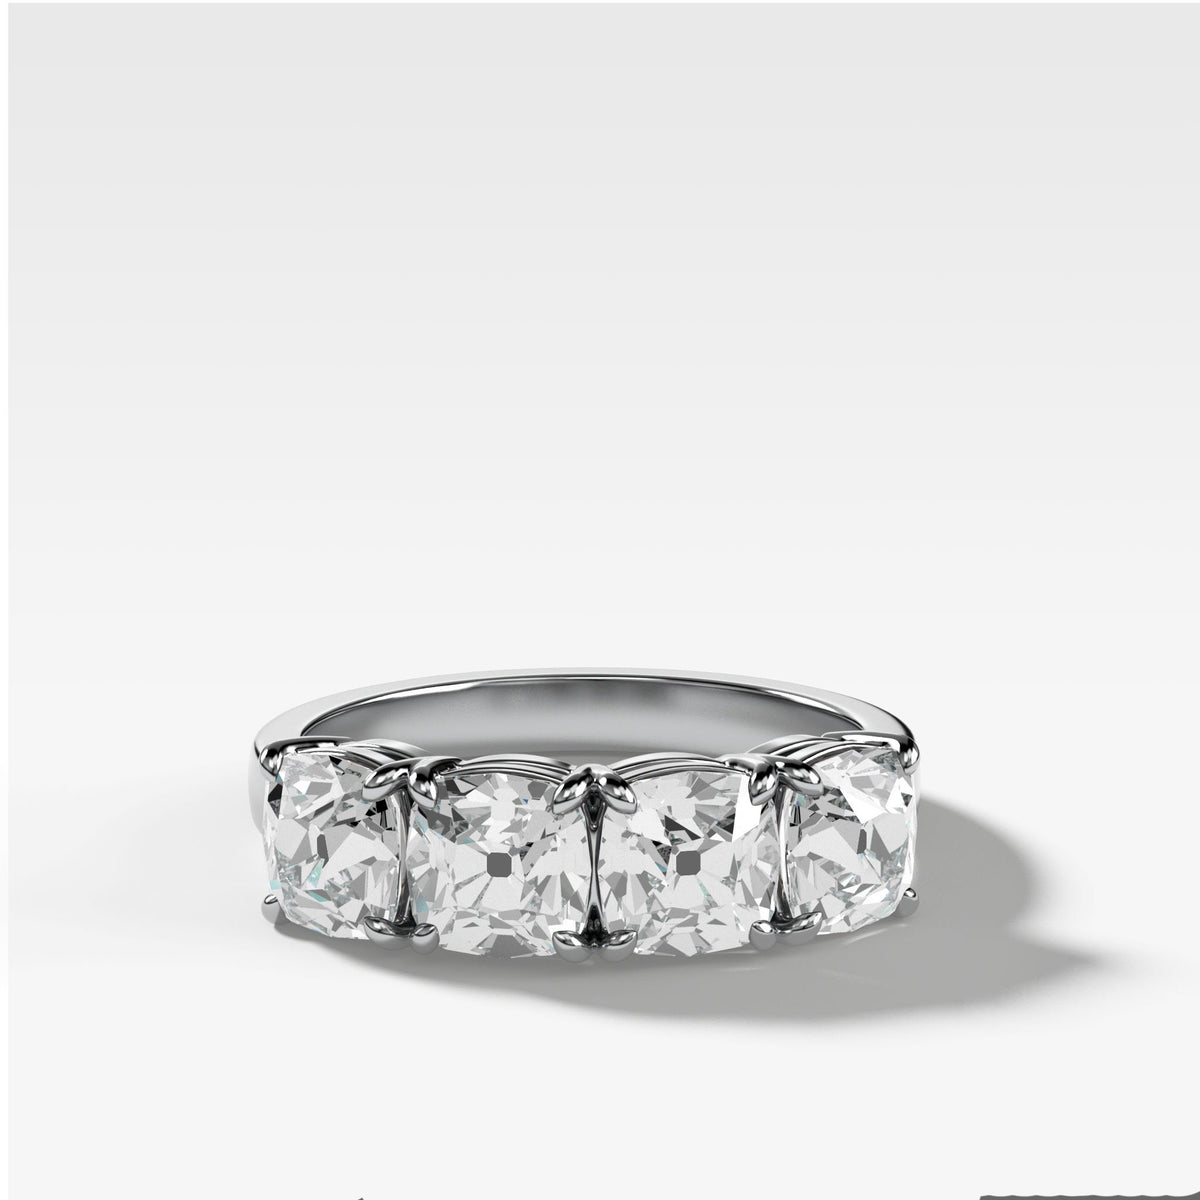 Four Stone Diamond Wedding Band With Old Mine Cuts in White Gold by Good Stone